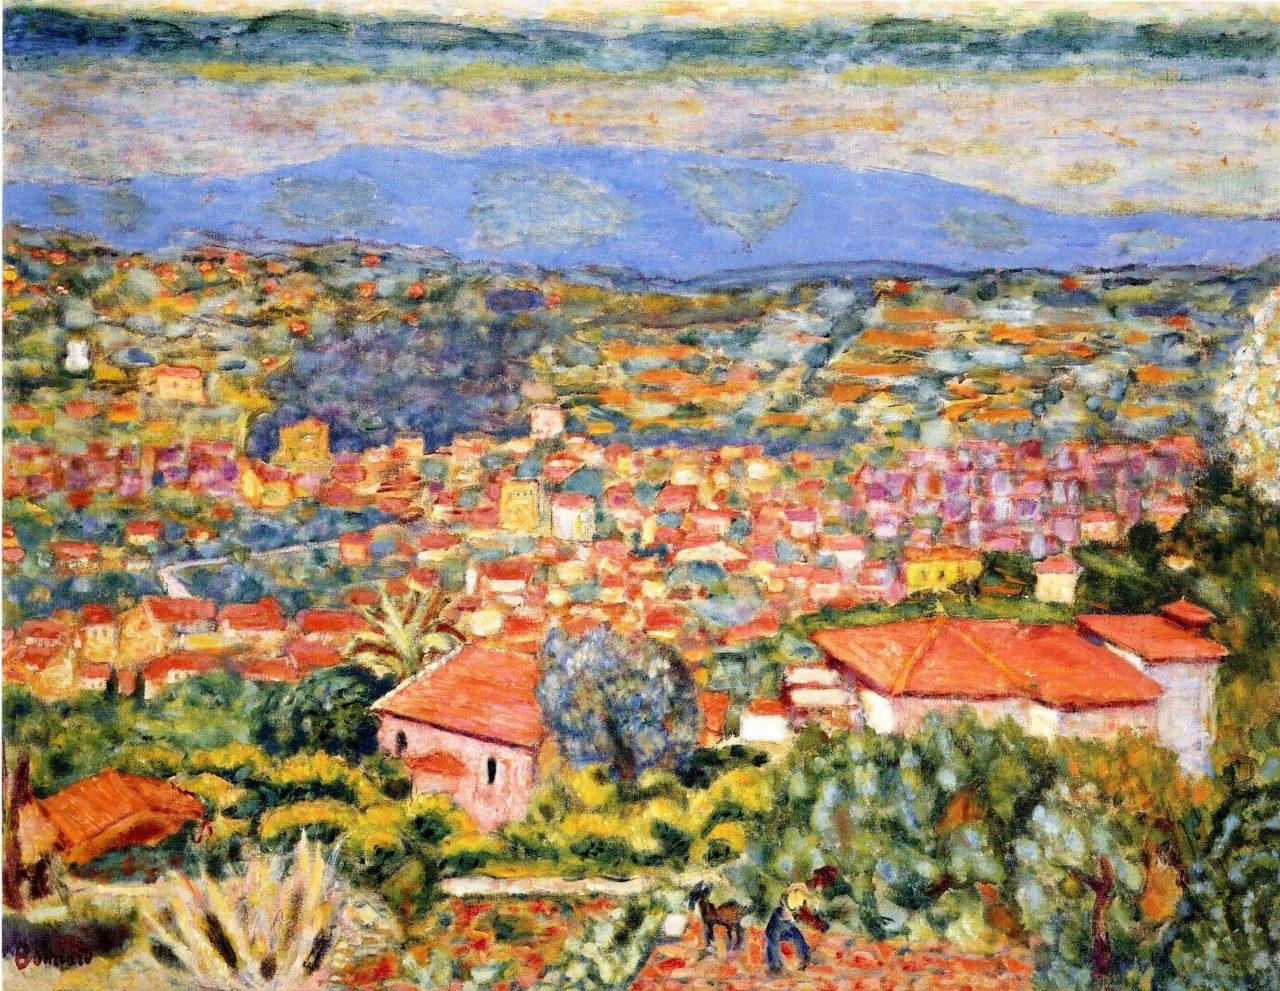 https://www.artsandcollections.com/wp-content/uploads/2019/01/Bonnard-1280x991.jpg